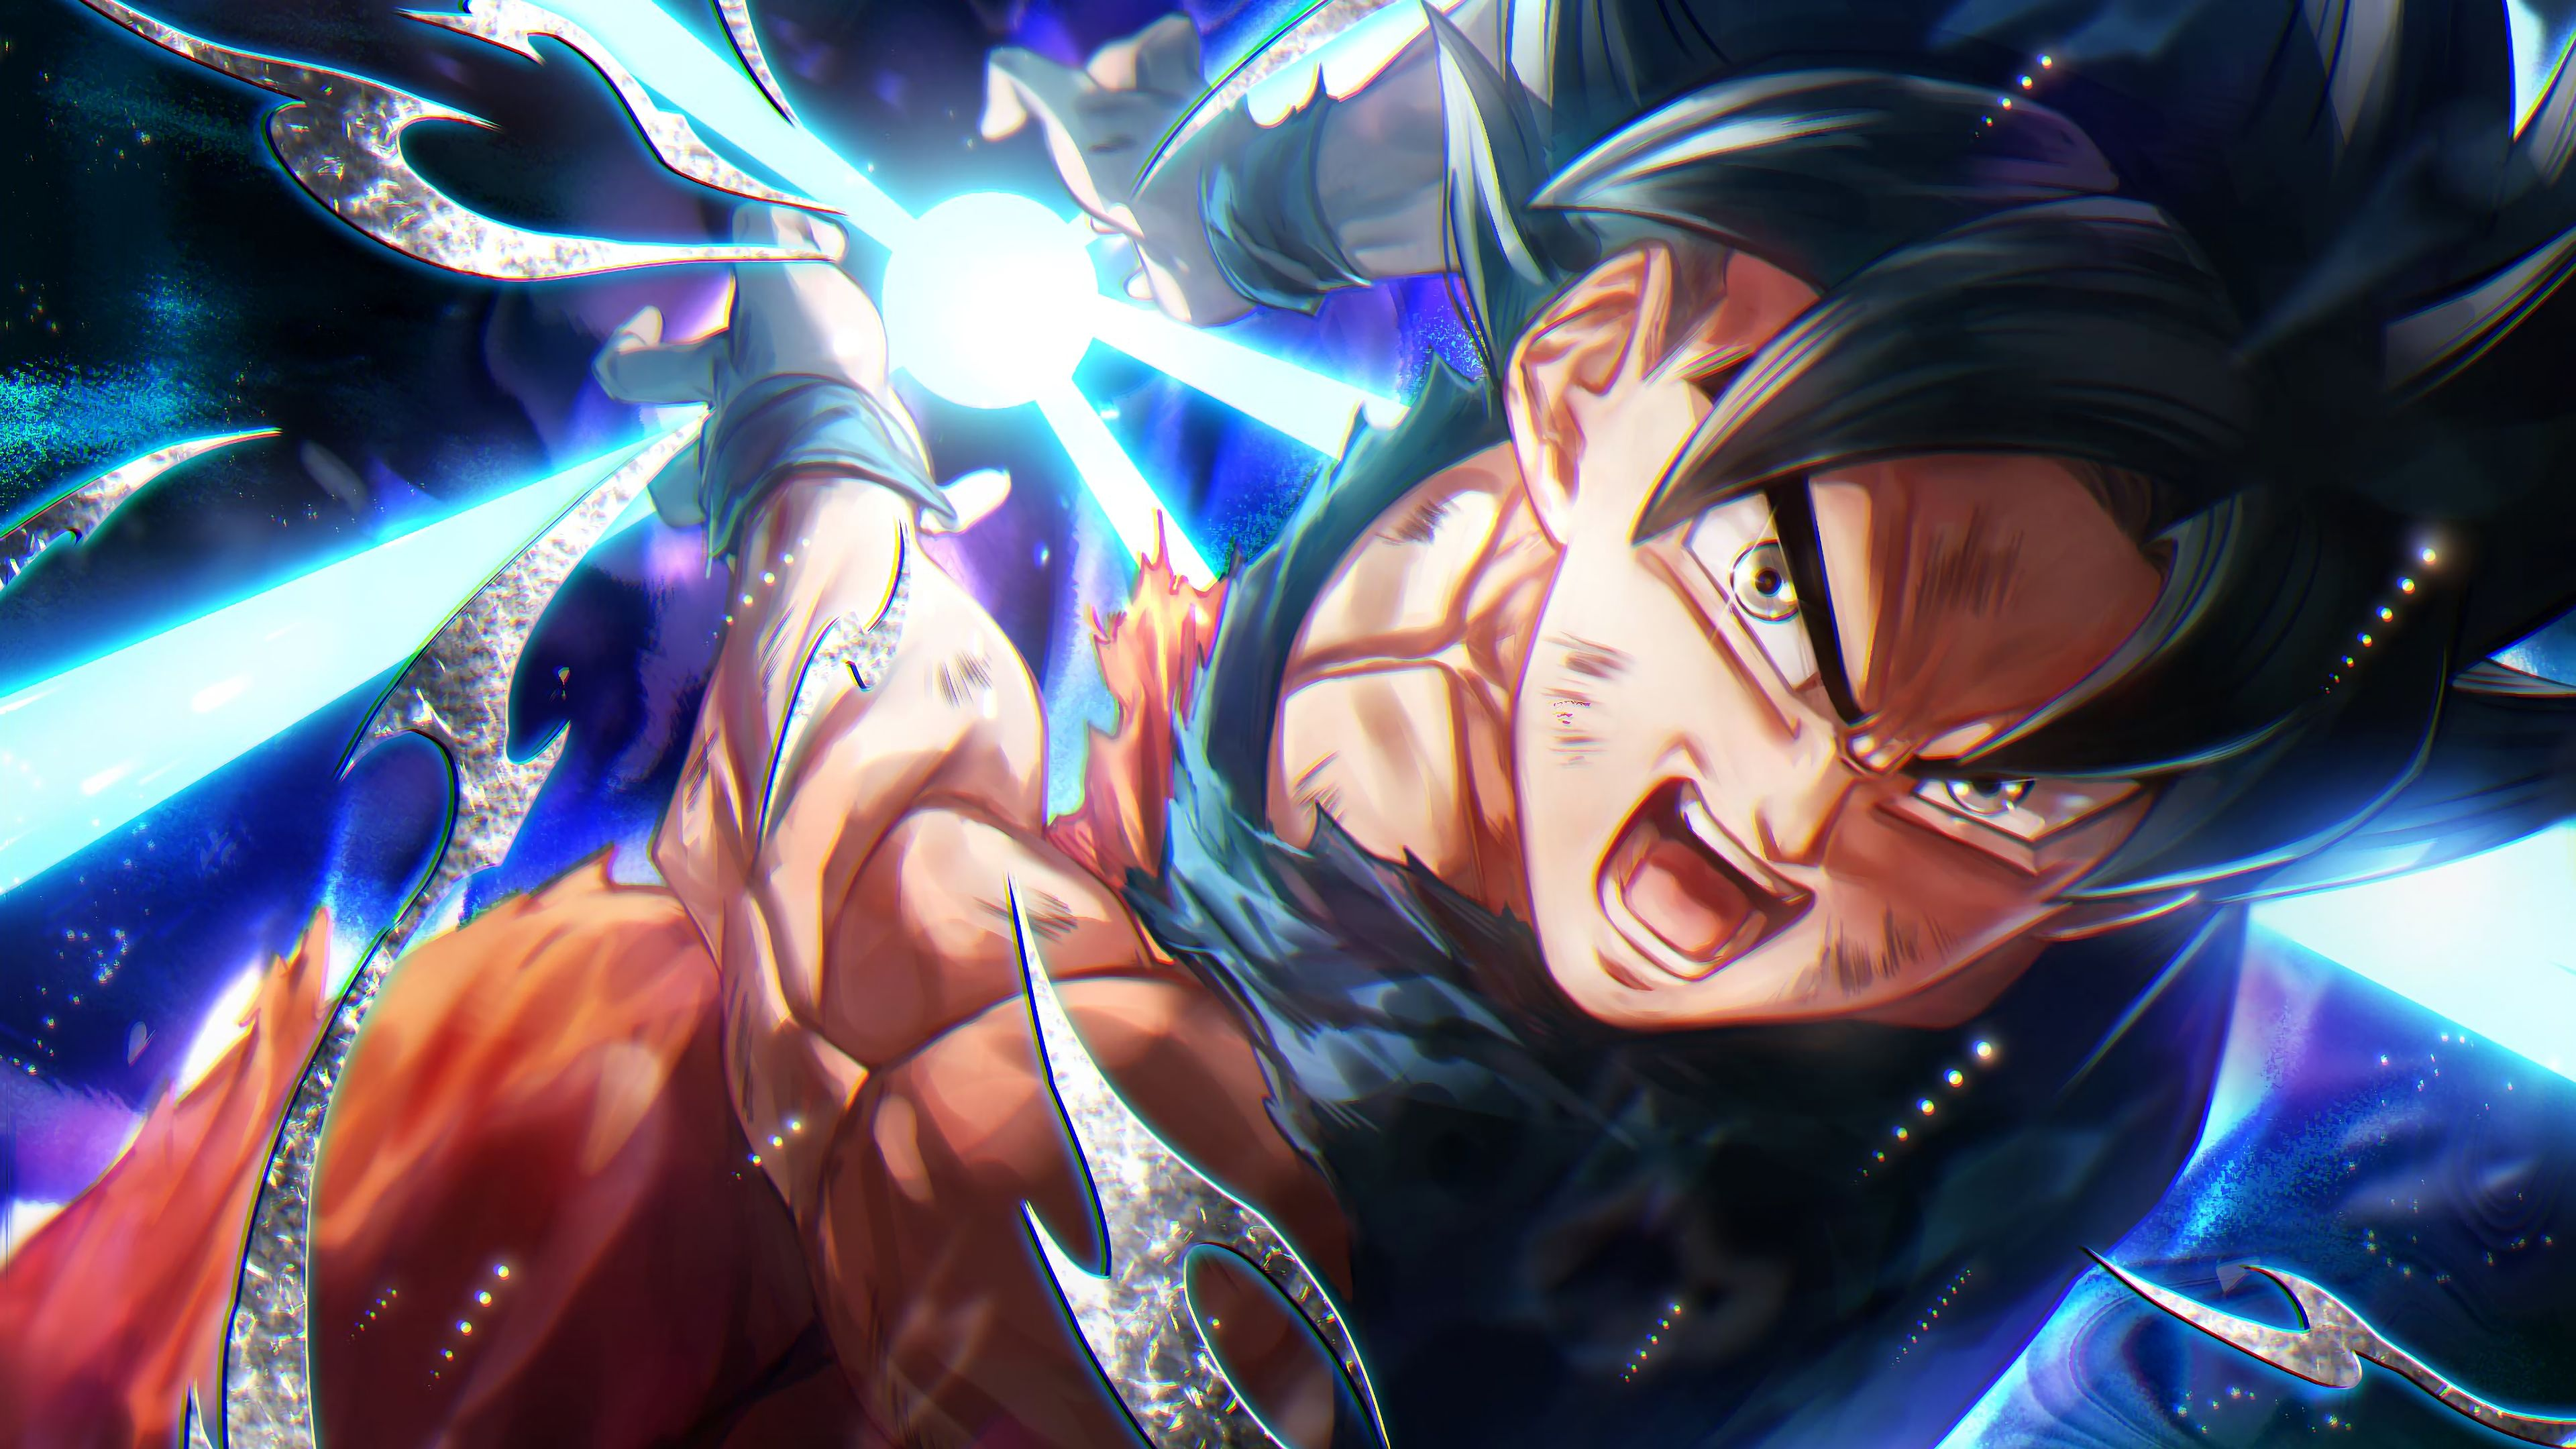 Goku Kamehameha Ultra Instinct Dragon Ball Super Anime 3840x2160 Wallpaper Anime Dragon Ball Dragon Ball Wallpapers Dragon Ball Goku